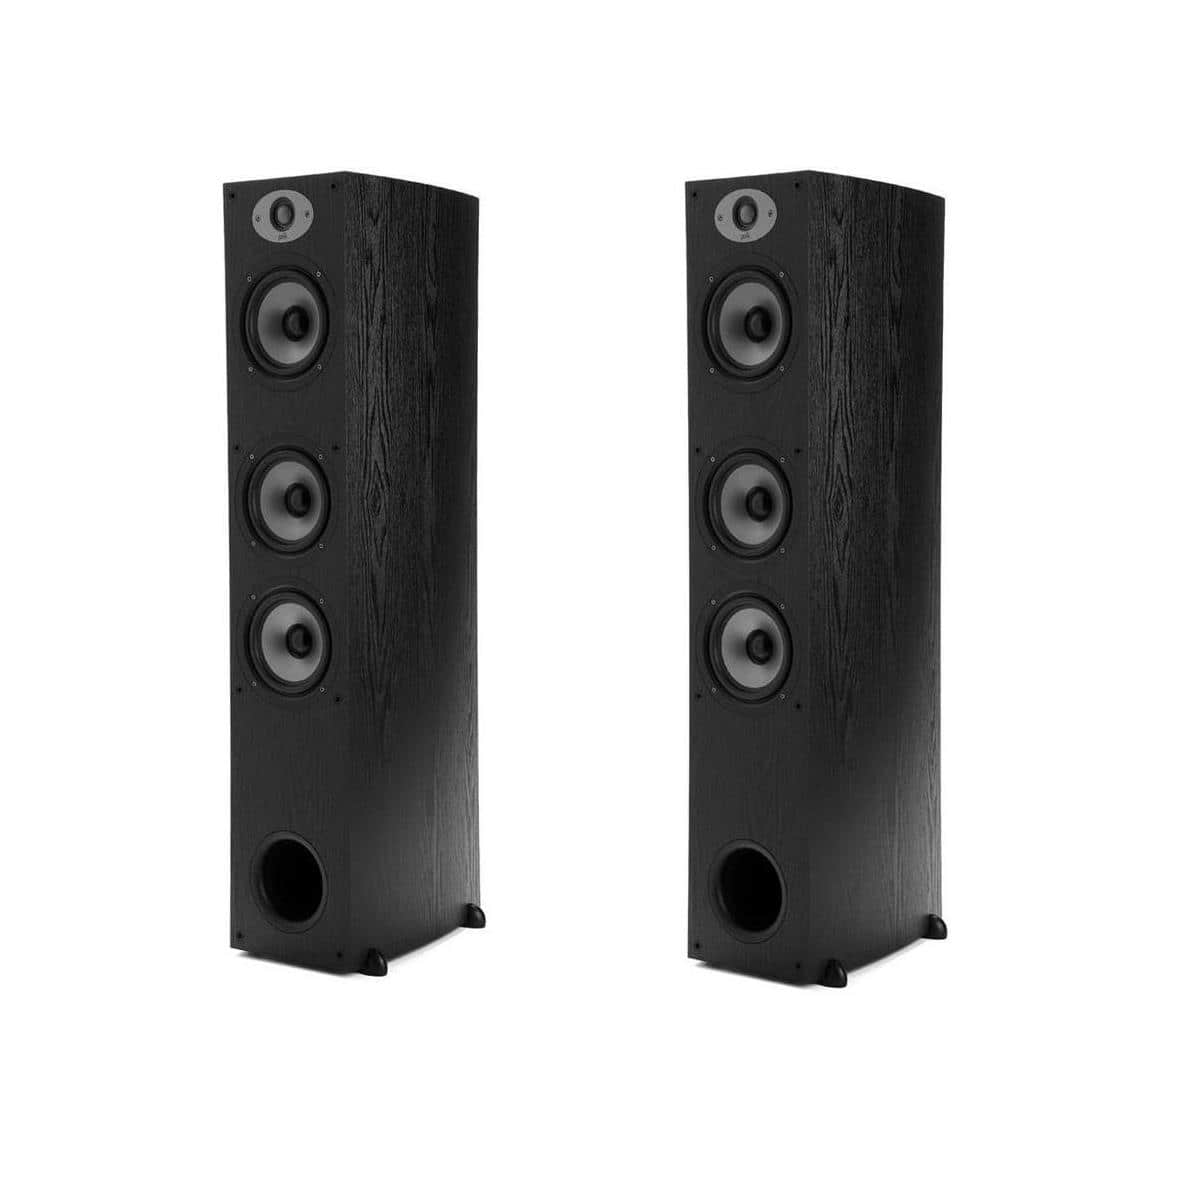 (pair) Polk Audio TSx440T High Performance Tower Speakers $350 + free shipping